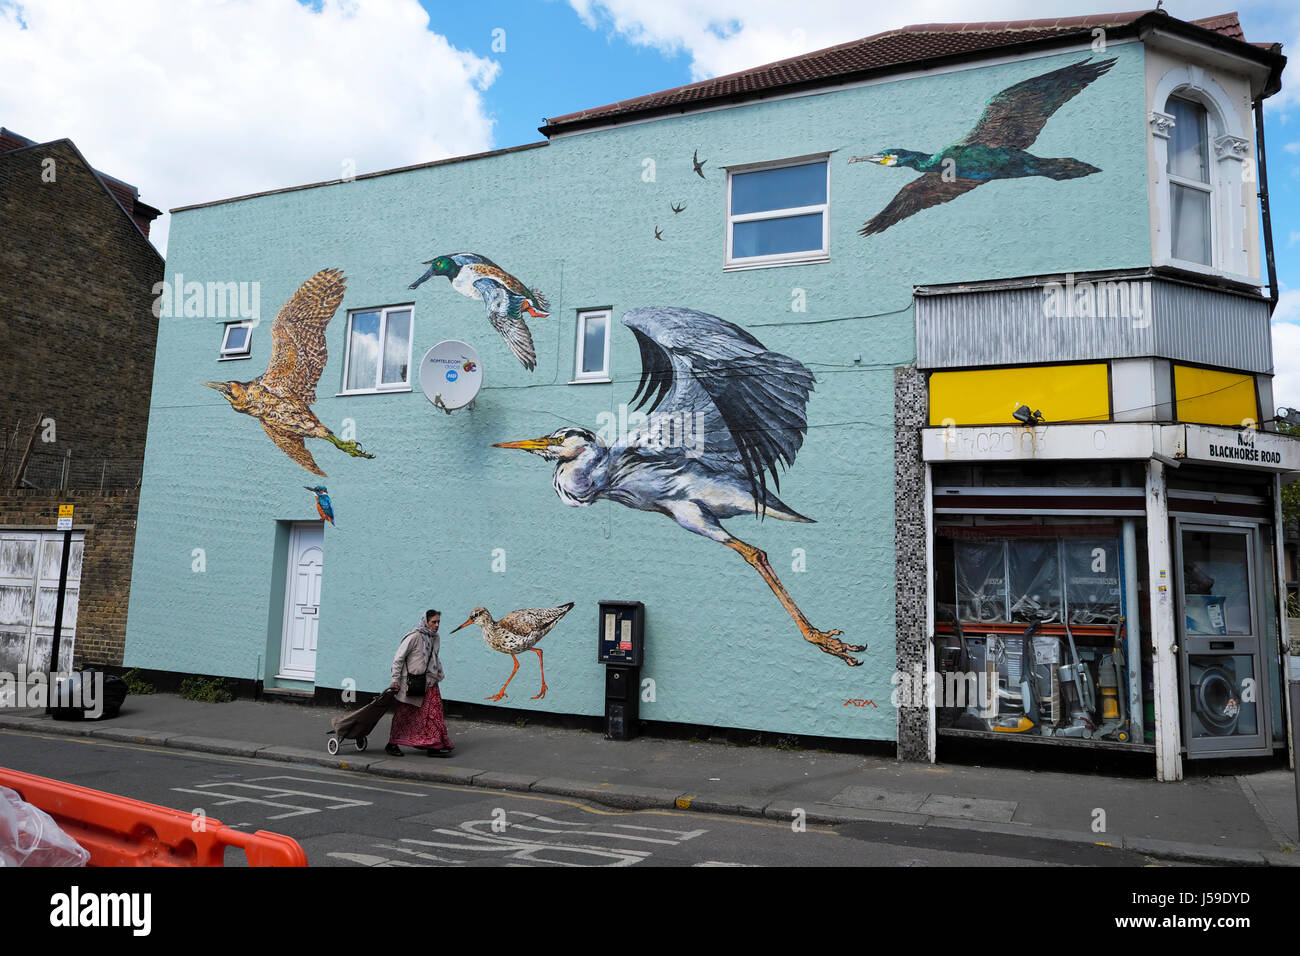 Bird mural of flying wetlands birds on the wall of a building on Coppermill Lane in Walthamstow, East London UK - Stock Image